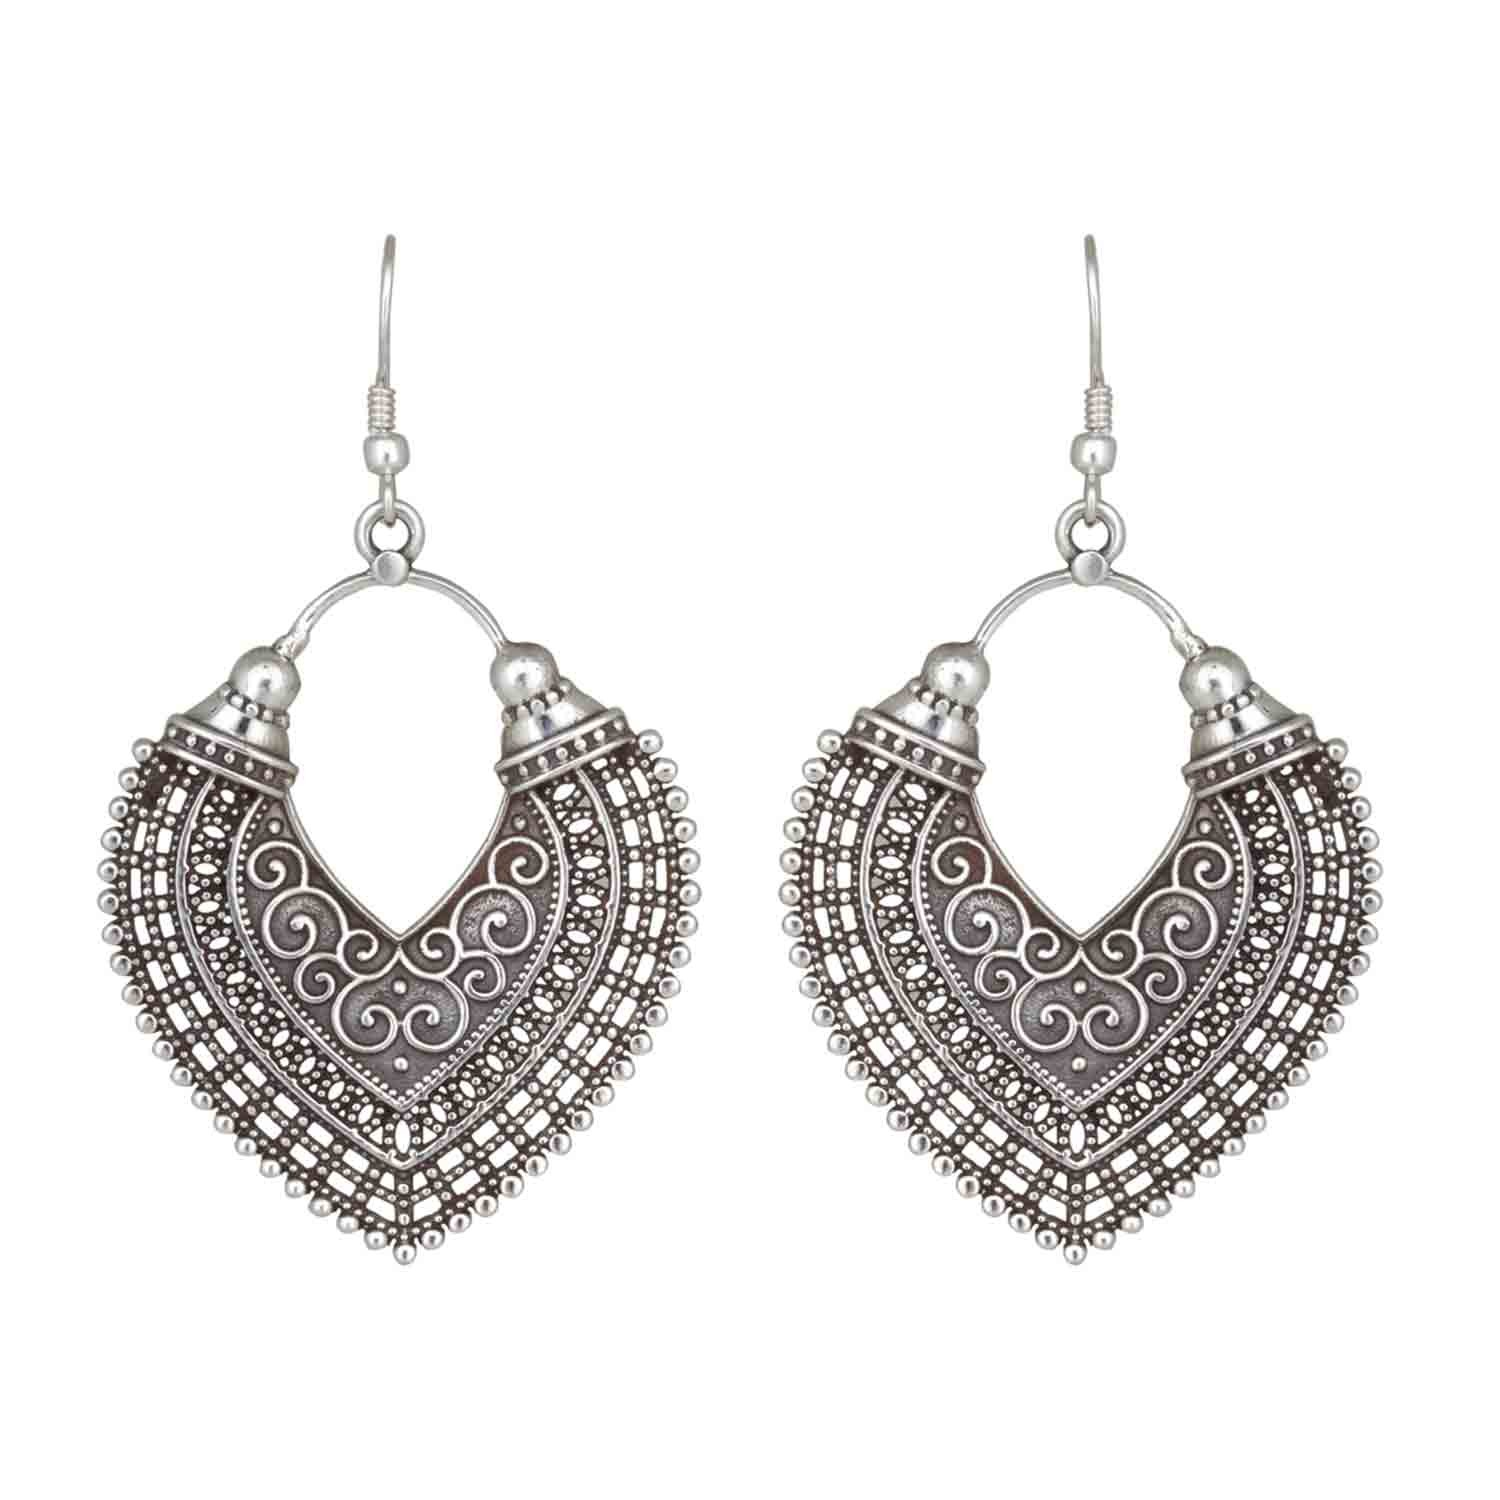 Mathura Silver Earrings